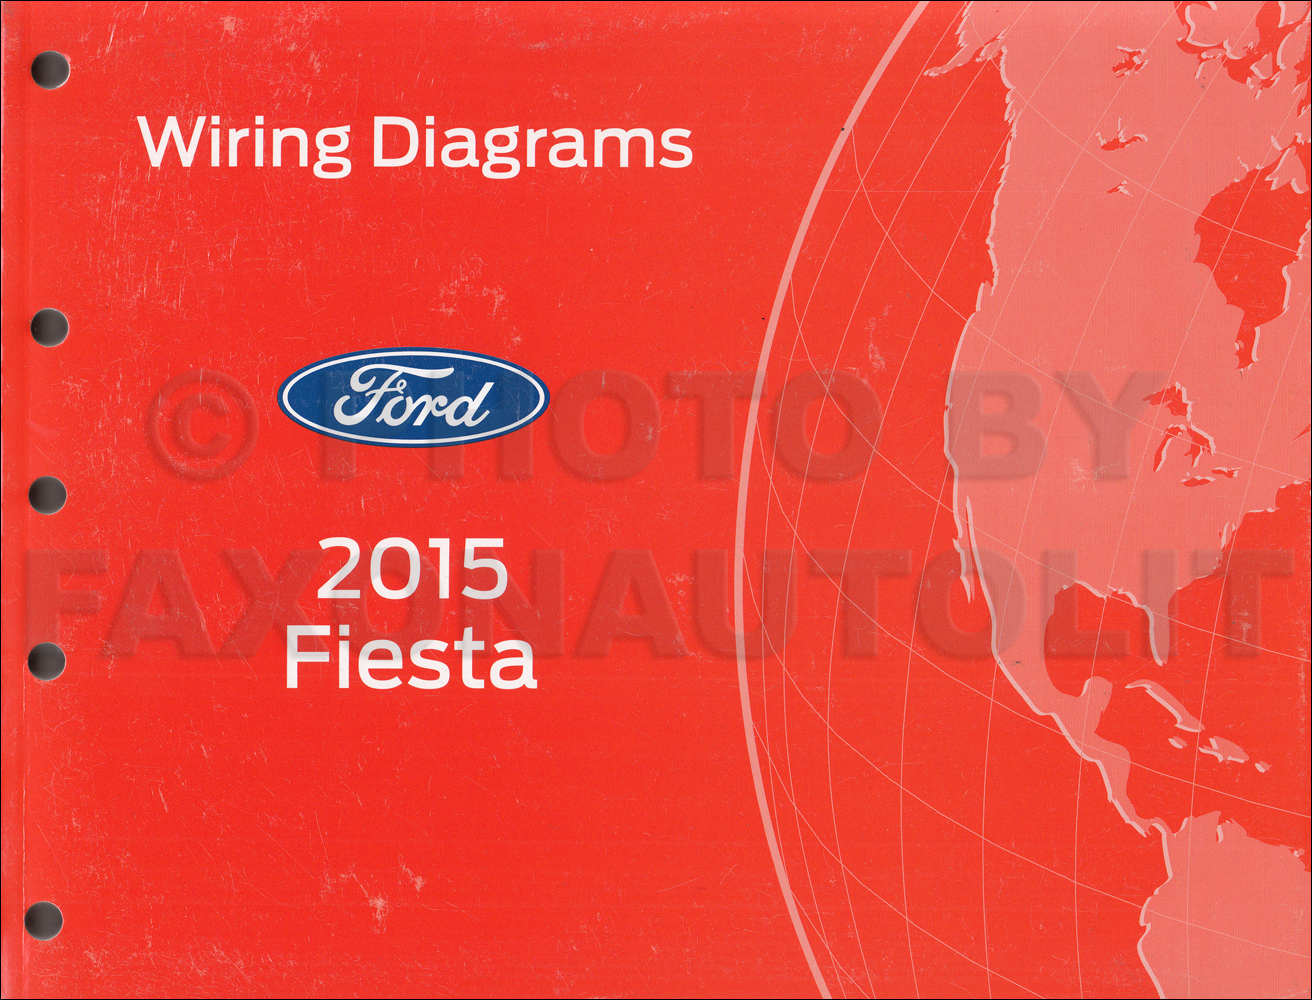 2015 Ford Fiesta Wiring Diagram Manual Original 2002 Ford Focus Engine  Diagram 2011 Ford Fiesta Wiring Diagram